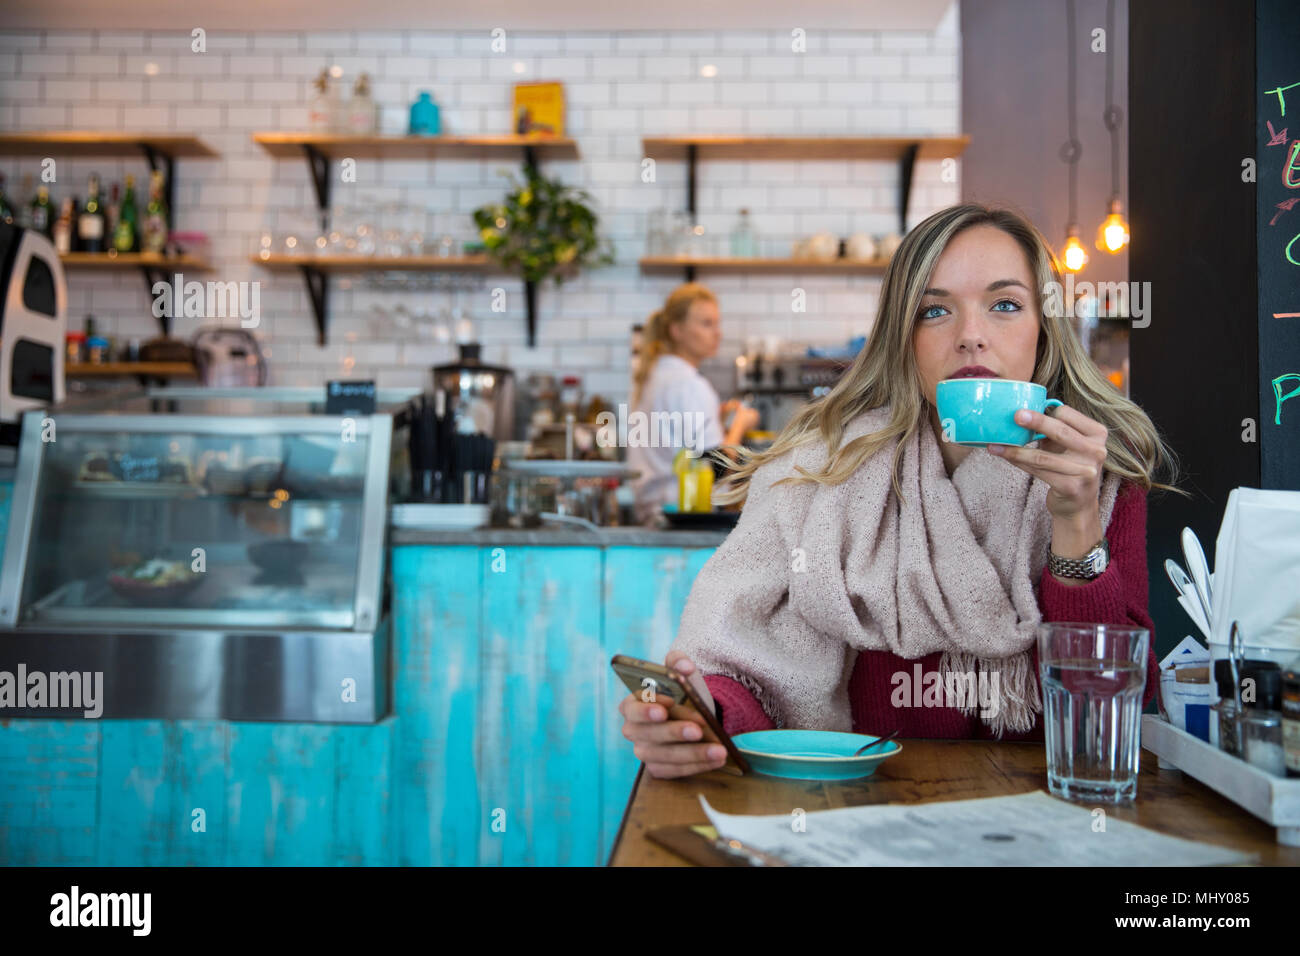 Woman sitting in cafe, holding smartphone, drinking coffee - Stock Image